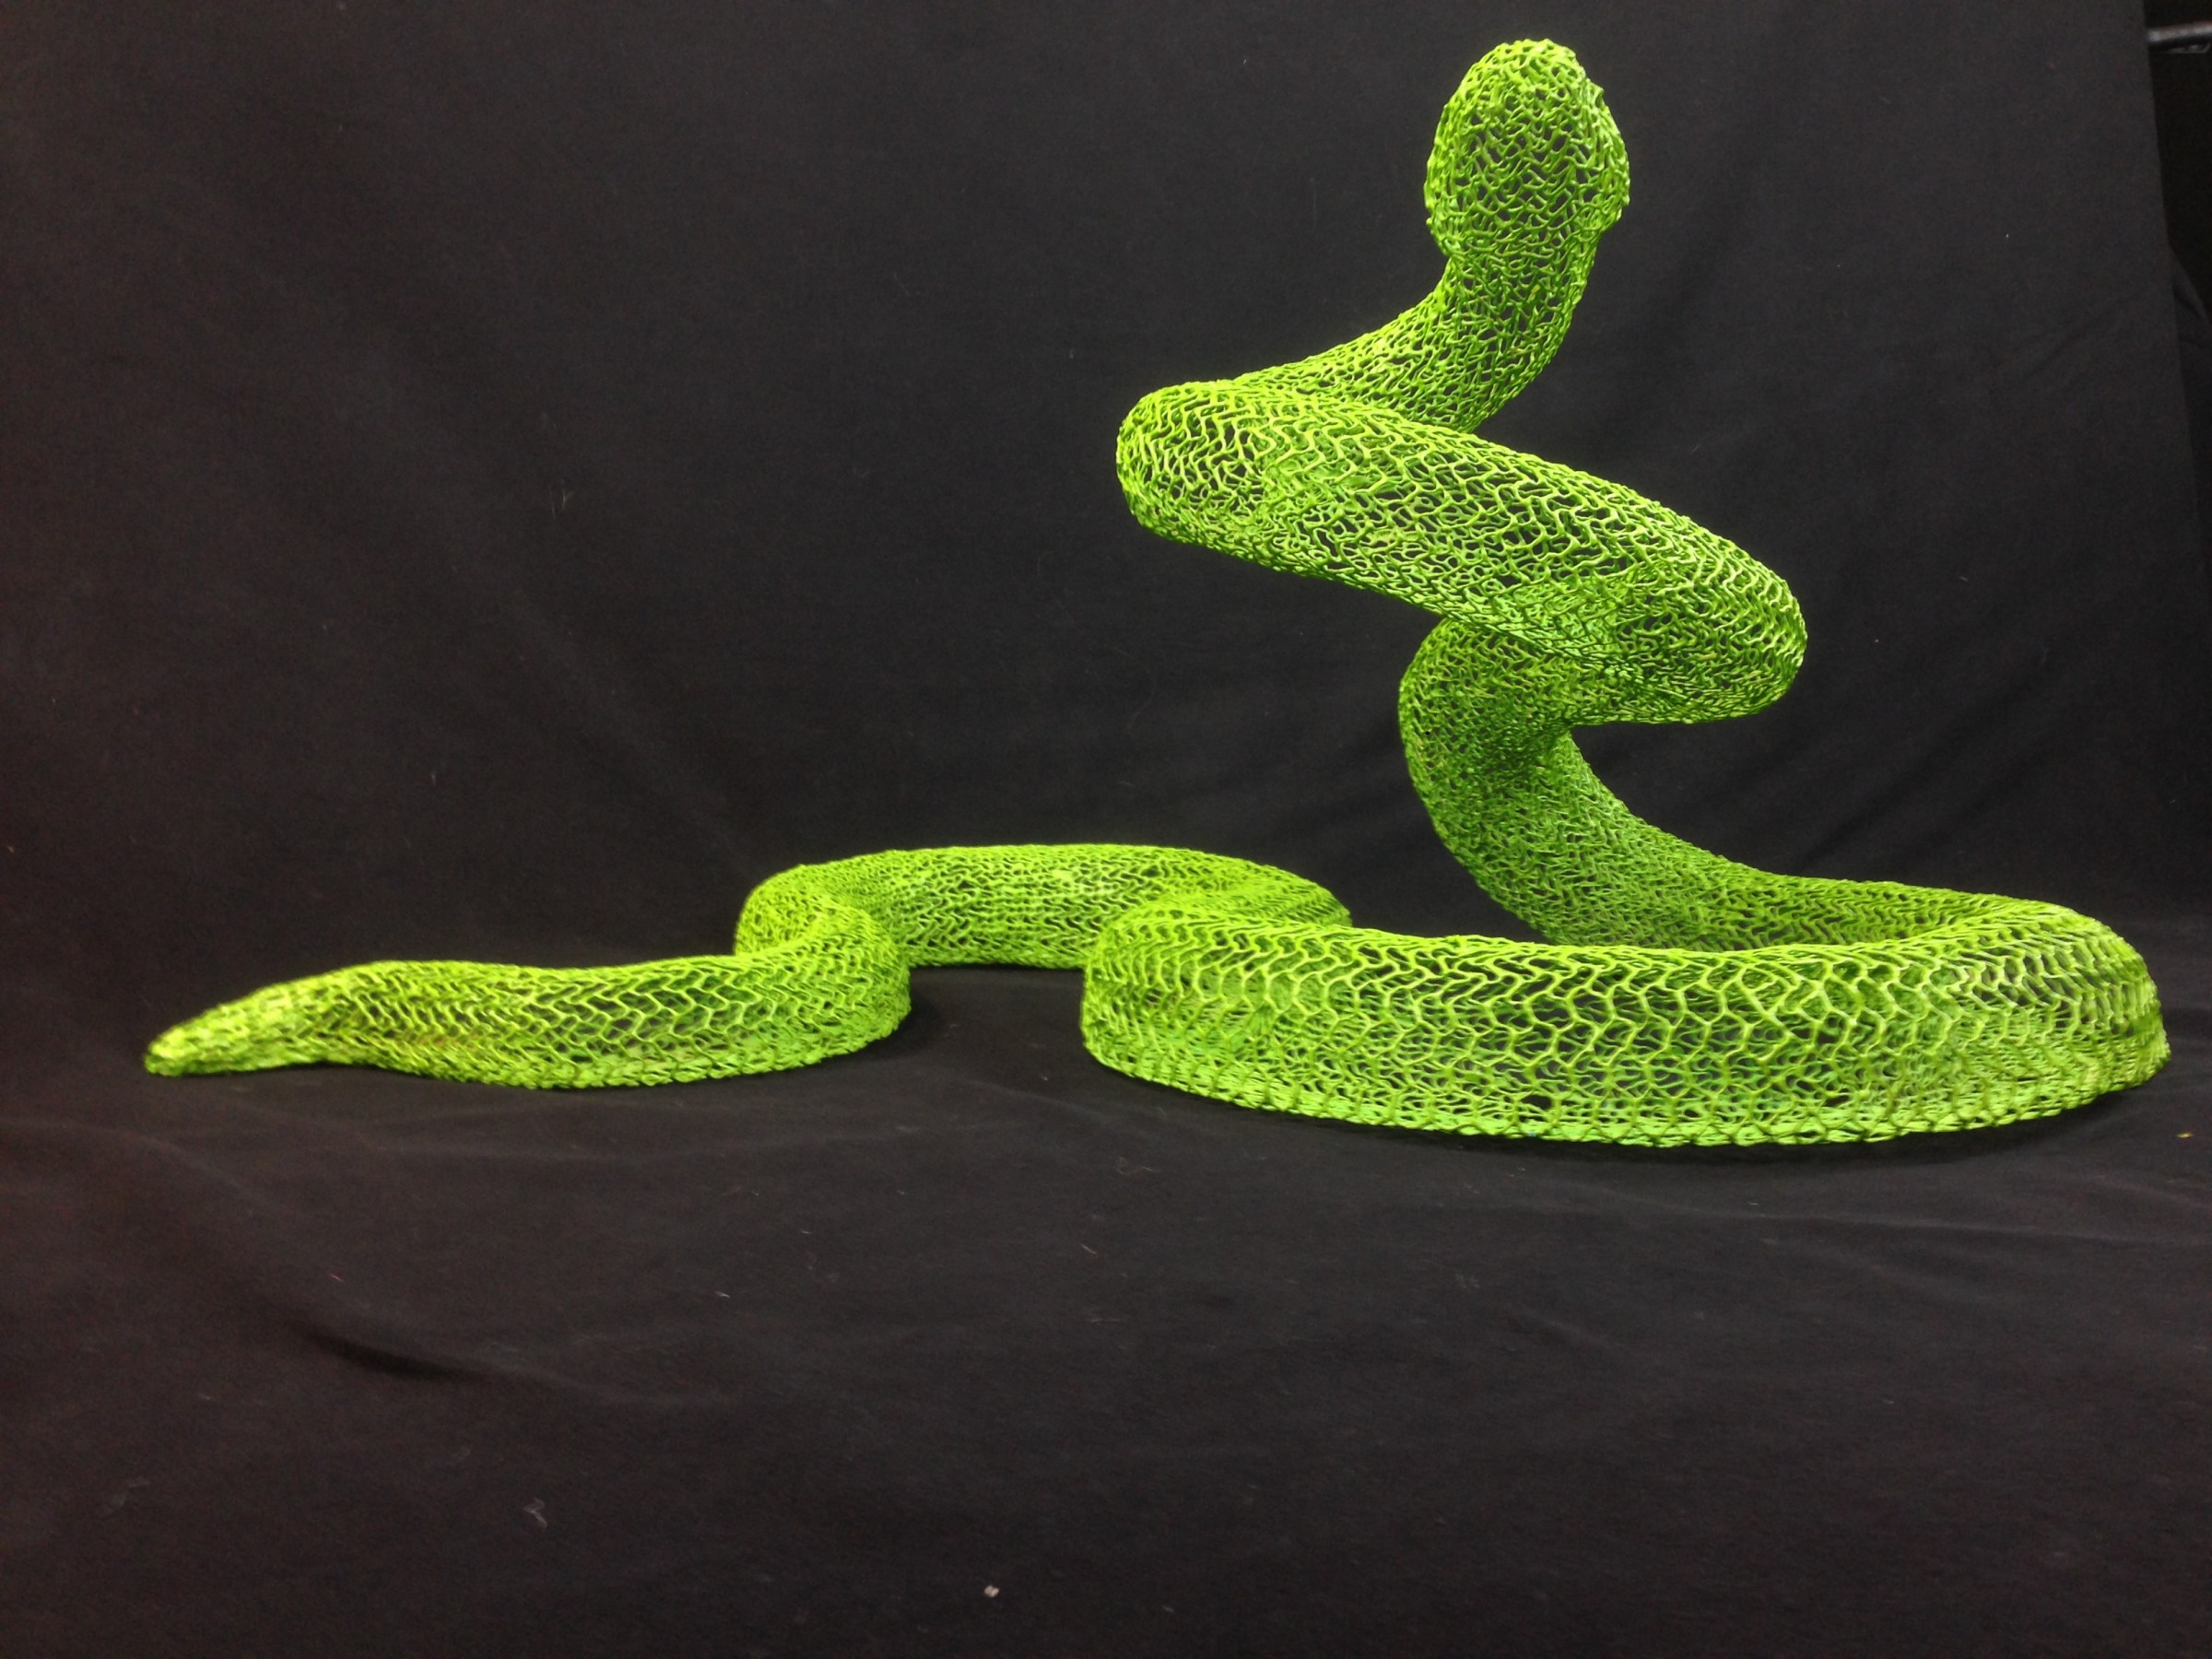 <span class=&#34;link fancybox-details-link&#34;><a href=&#34;/exhibitions/6/works/artworks4843/&#34;>View Detail Page</a></span><div class=&#34;artist&#34;><strong>Eka Acosta</strong></div><div class=&#34;title&#34;><em>Green Snake</em>, 2018</div><div class=&#34;medium&#34;>Mesh wire</div><div class=&#34;dimensions&#34;>44 x 98 x 60 cm</div>